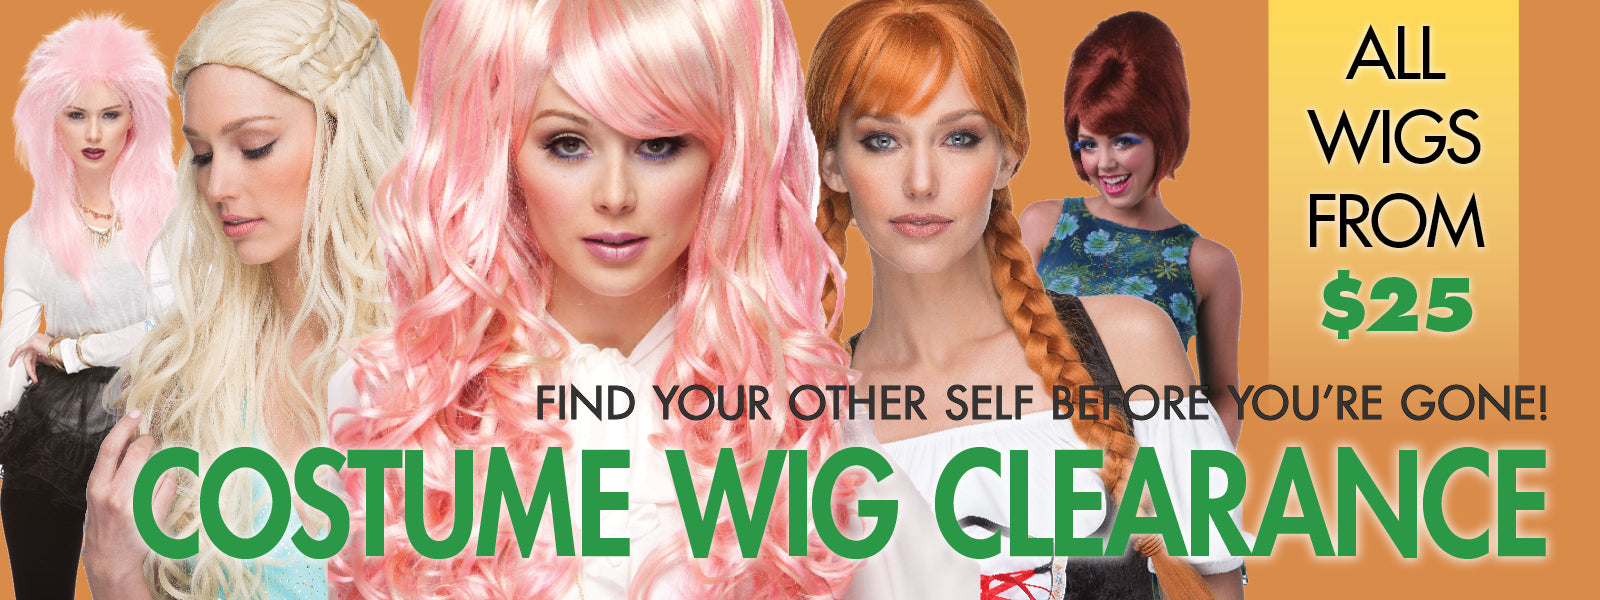 Costume Wig Clearance at Abantu - Wigs from $25